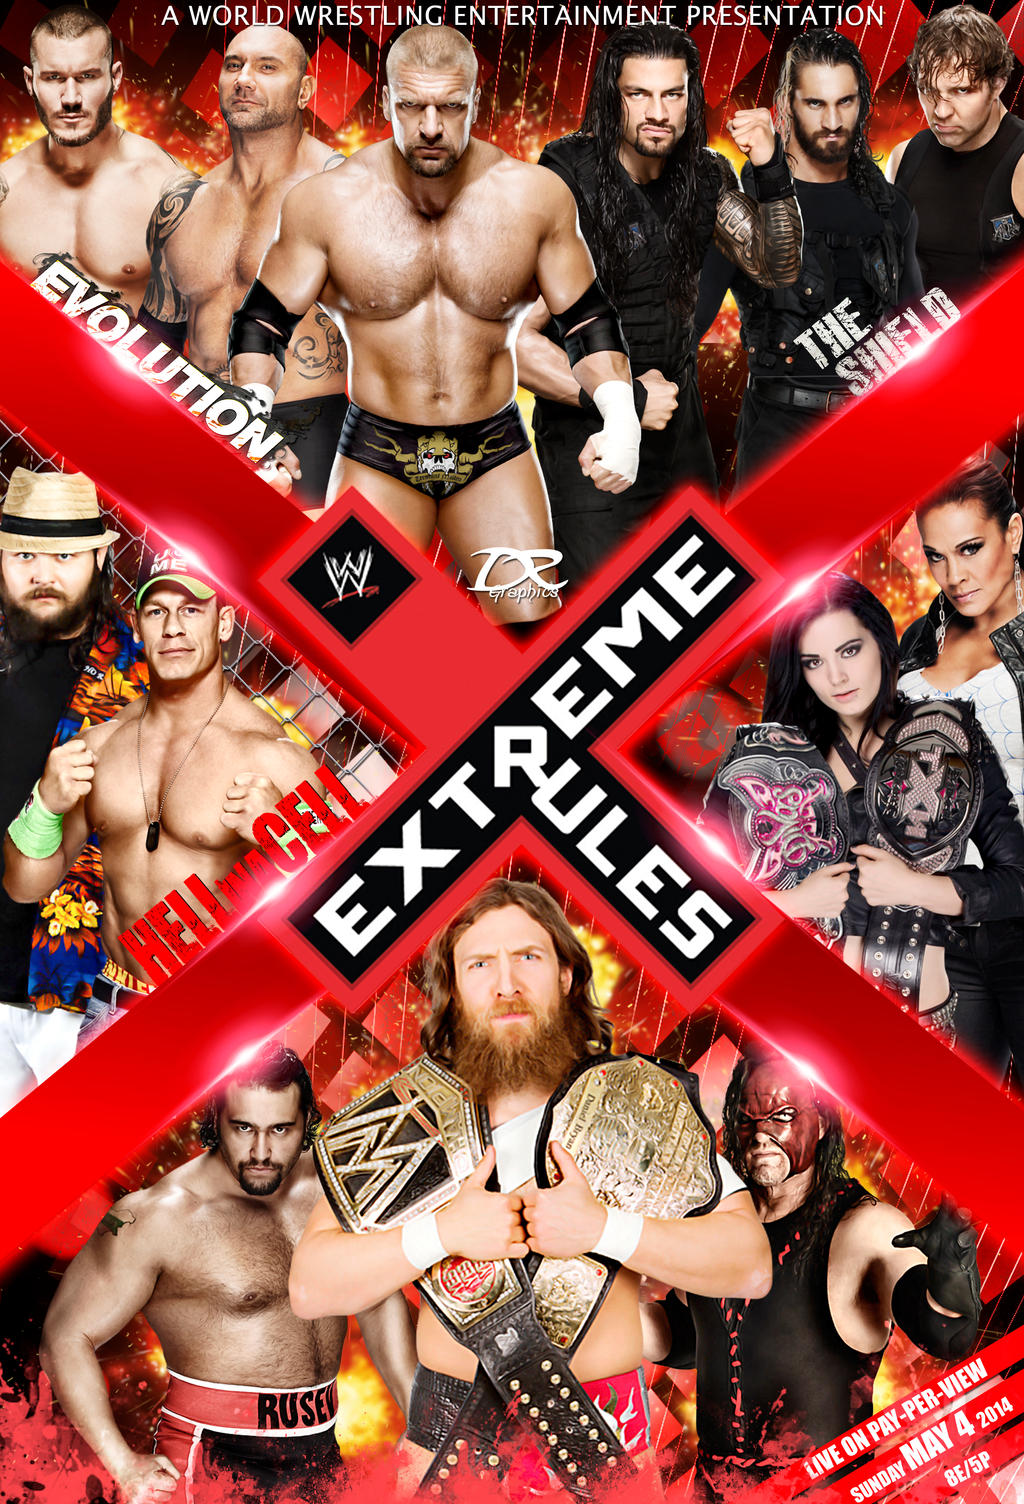 WWE Extreme Rules 2014 poster by Dinesh-Musiclover